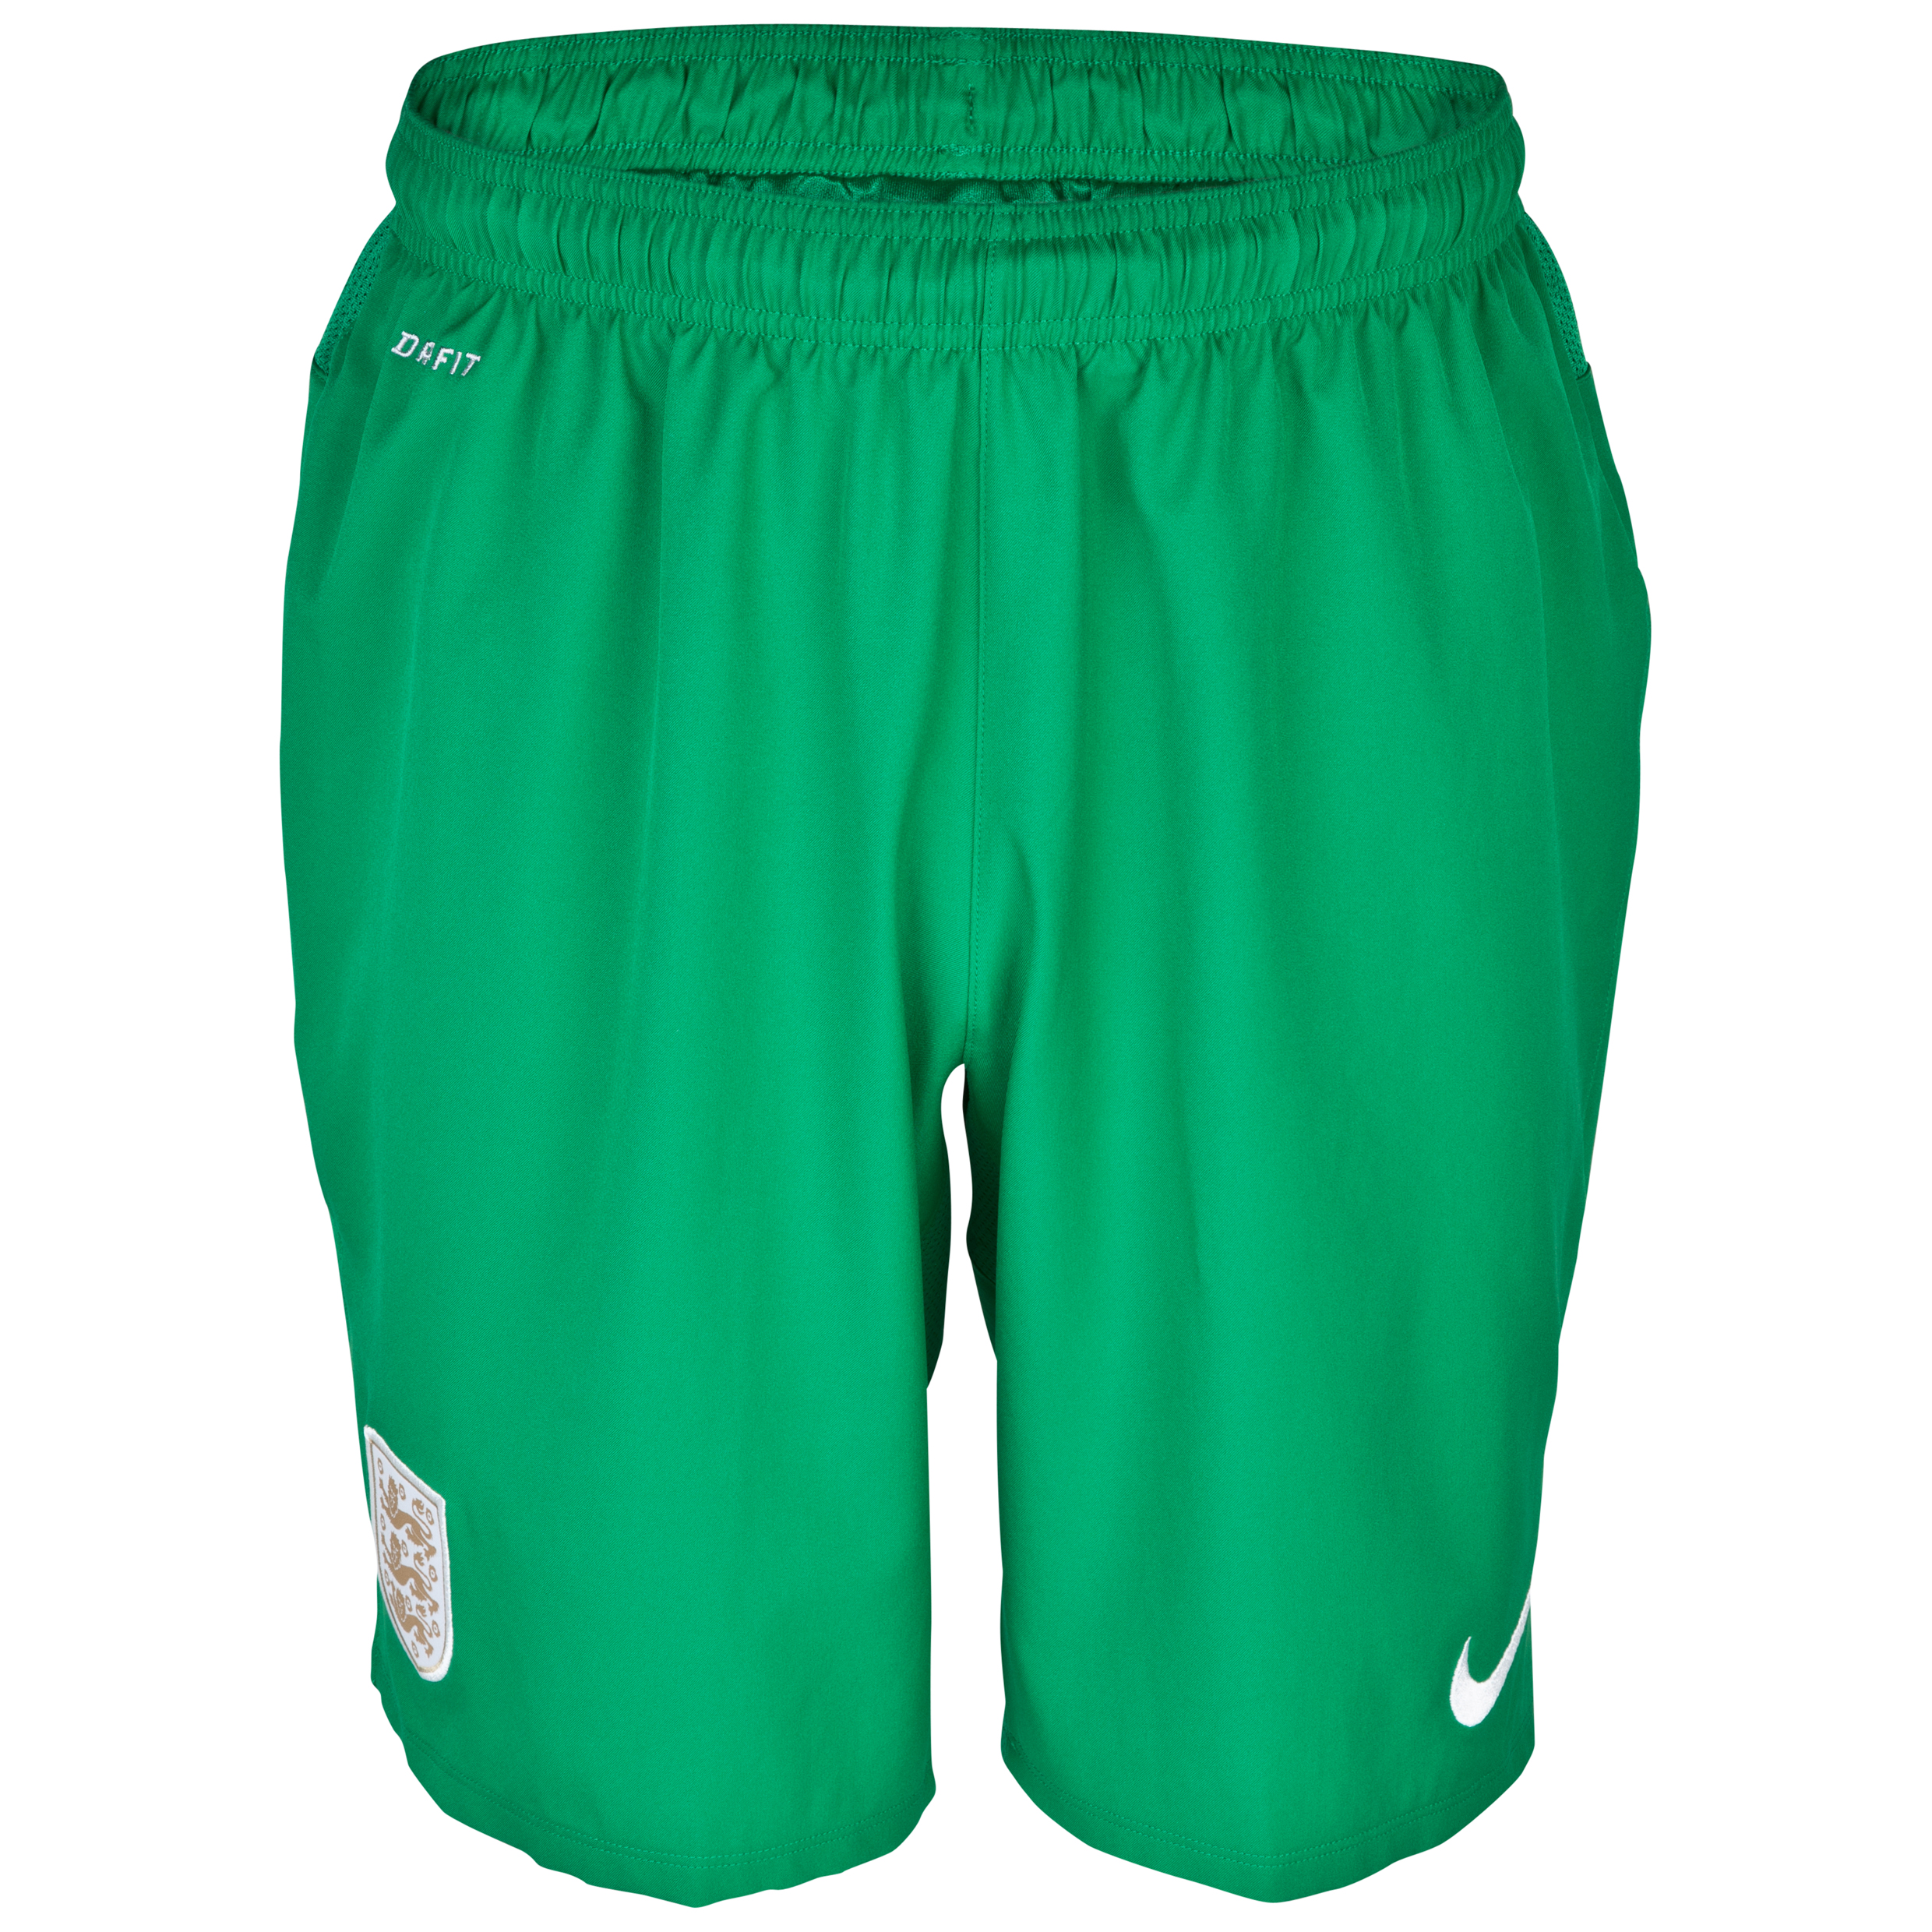 England Home Goalkeeper Short 2013/14 Green